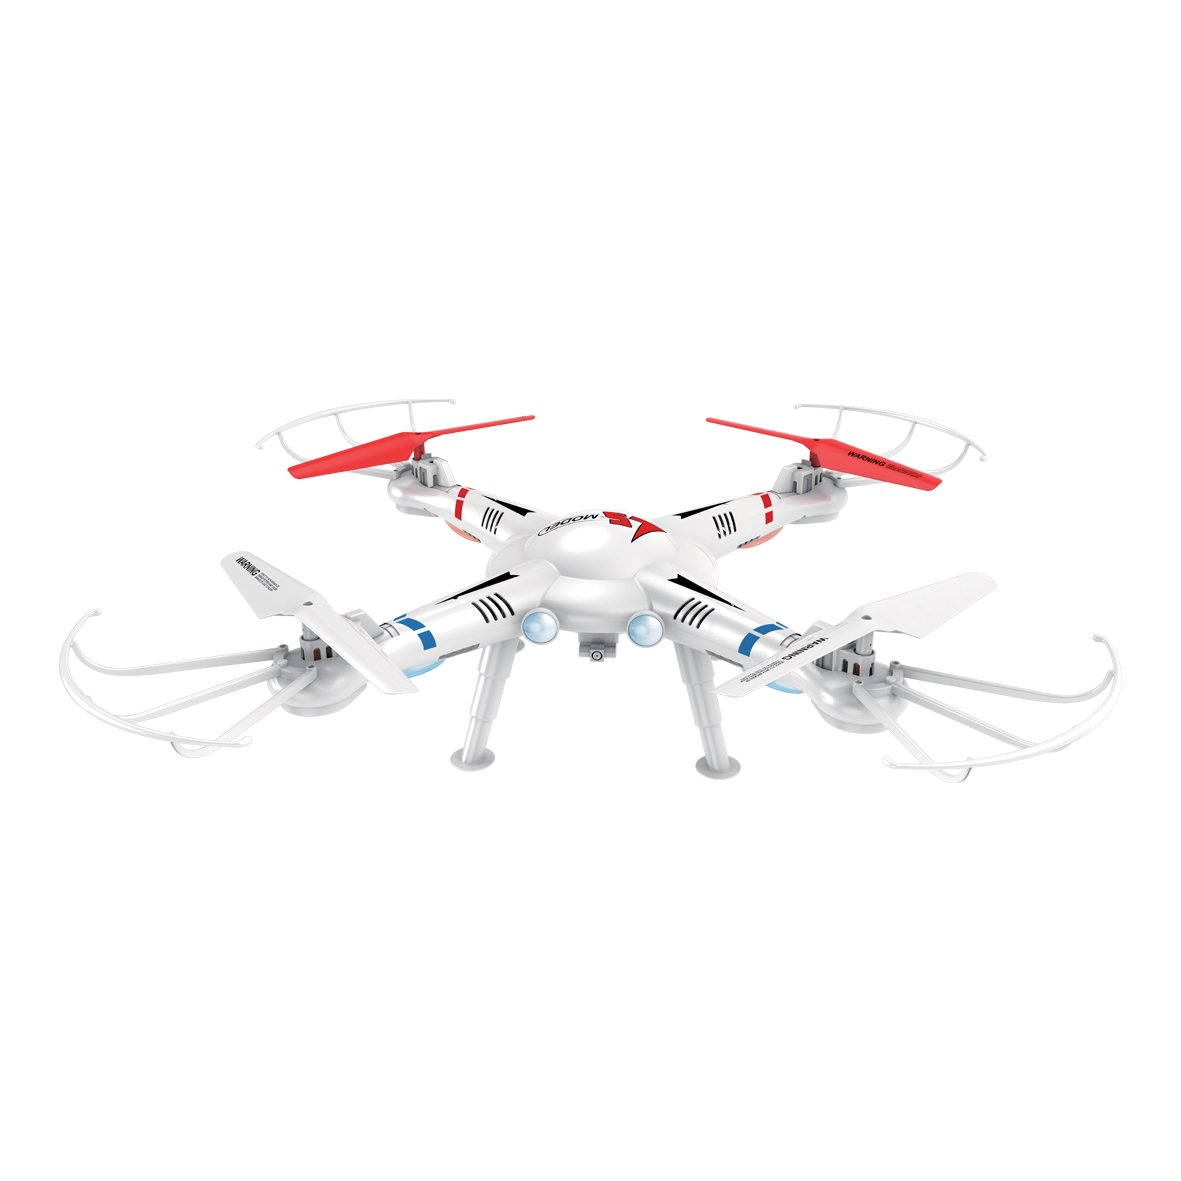 Global Gizmos 53310 50 cm 2.4 GHz Flying Drone Quad Helicopter with Camera by Global Gizmos